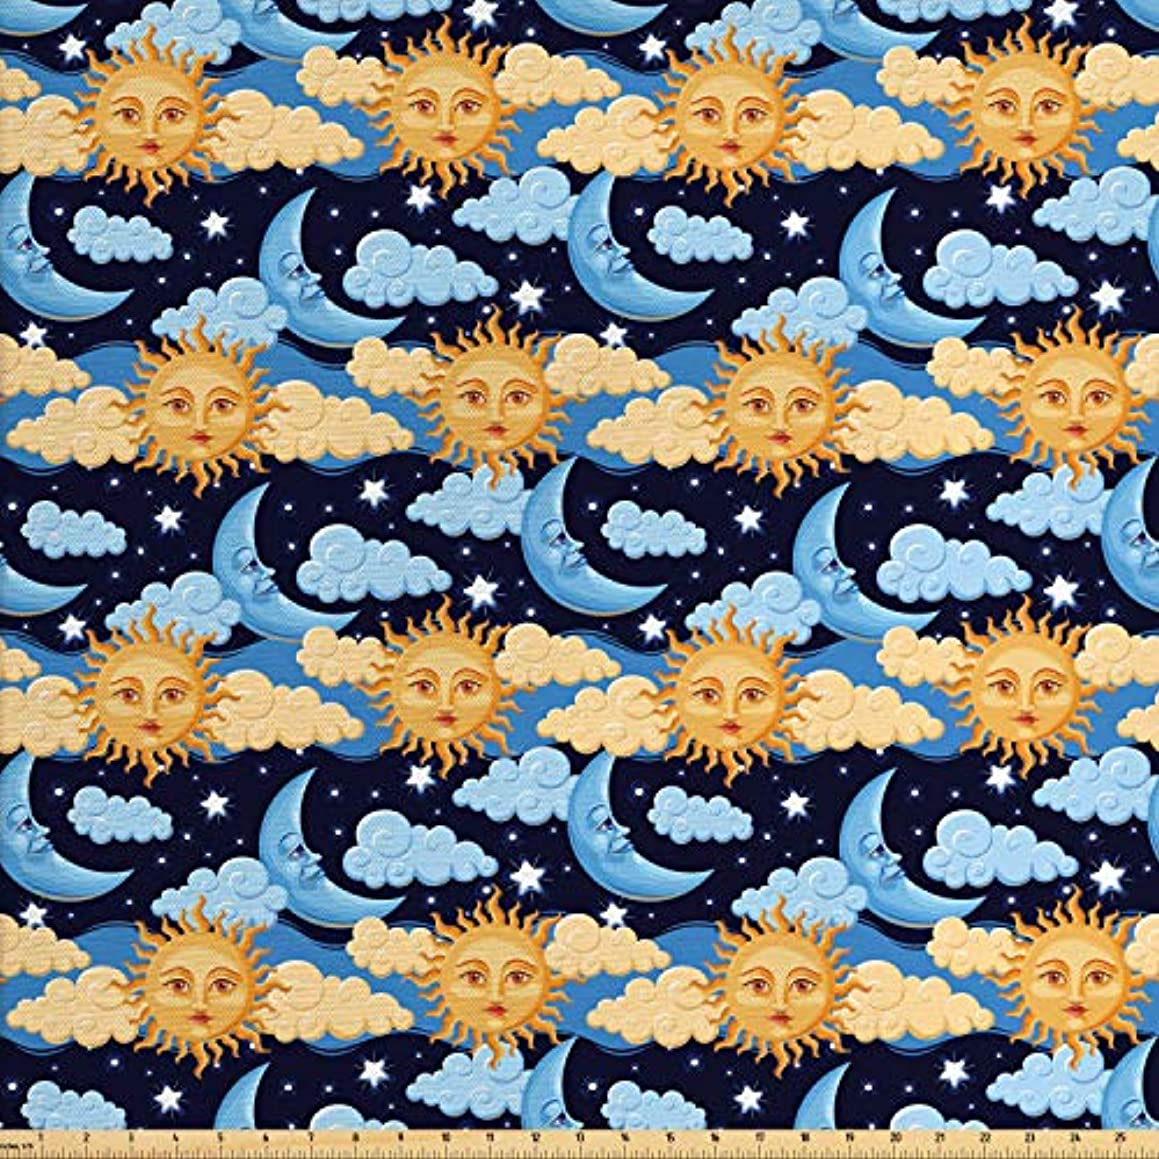 Lunarable Sun and Moon Fabric by The Yard, Colorful Night Sky Filled with Stars and Clouds with Mythical Celestial Bodies, Decorative Fabric for Upholstery and Home Accents, 1 Yard, Multicolor